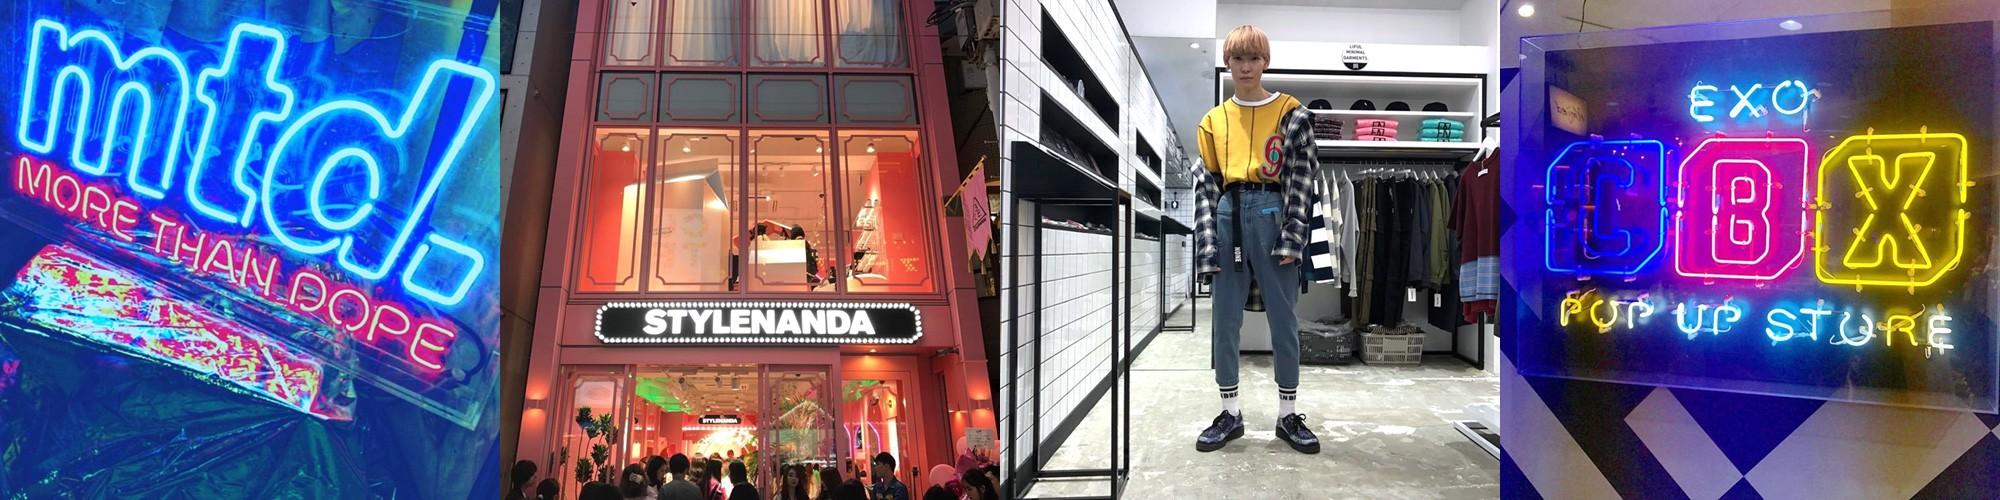 Japanese Street Fashion 2017 — 15 Things You Need To Know